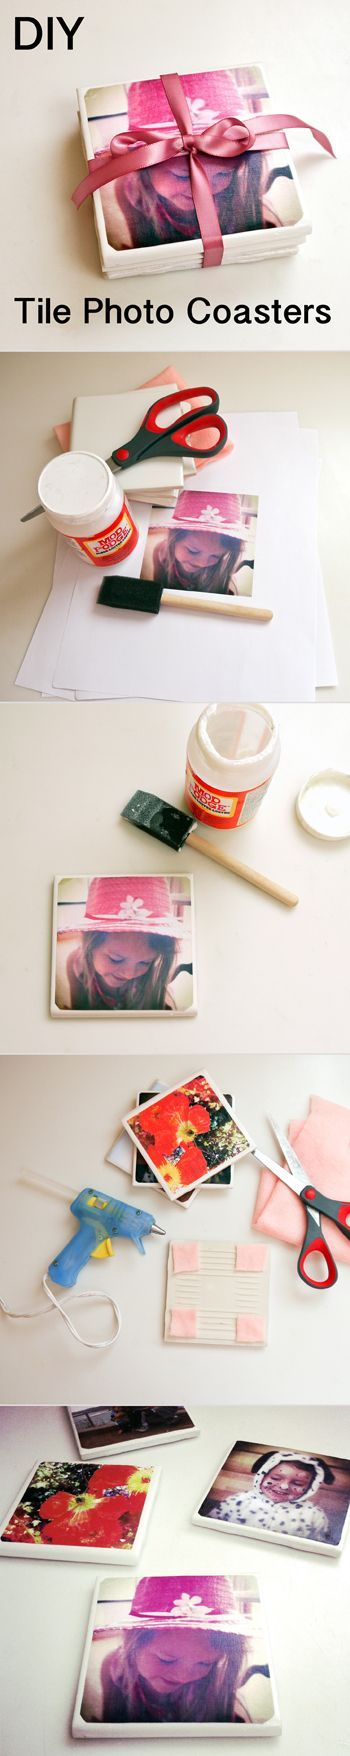 BEST DIY Mother's day gift. It's so easy to make and so meaningful. Instagram photos!